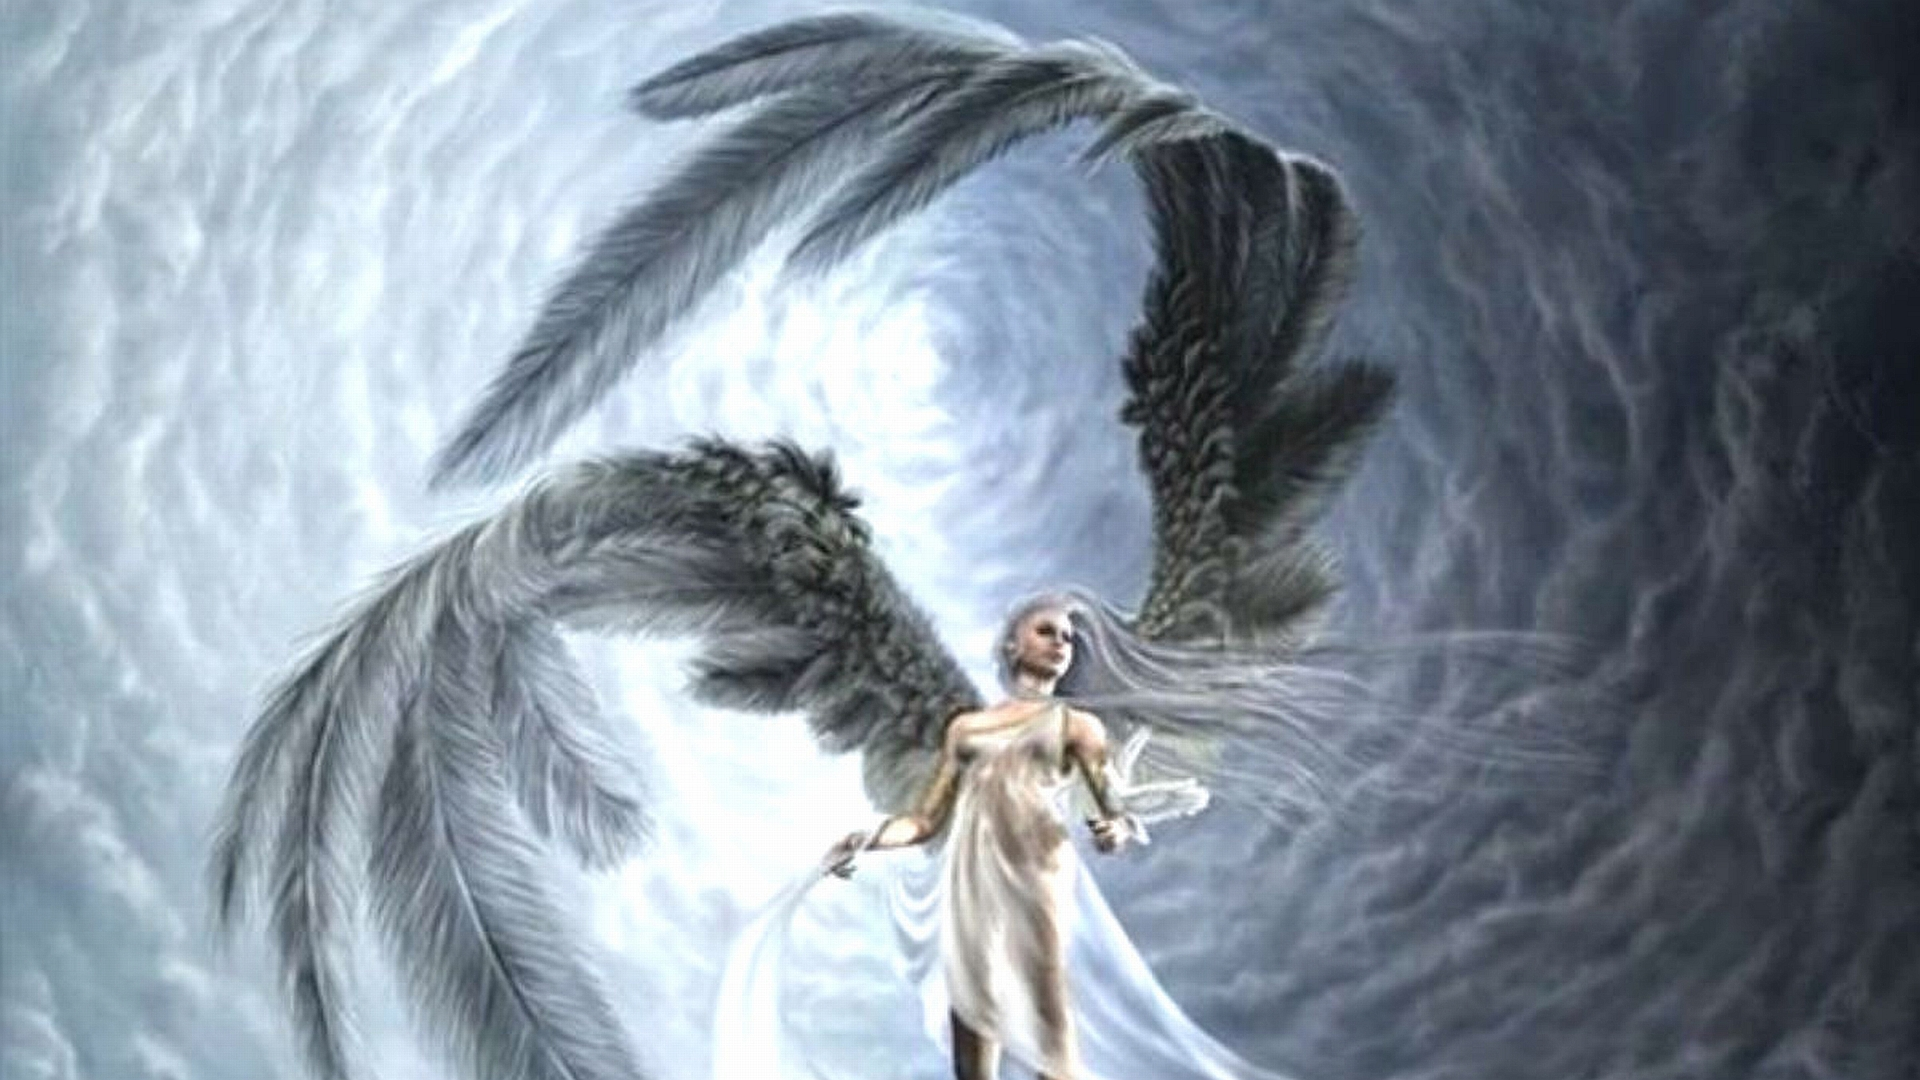 Free Wallpaper Of Angels Posted By John Peltier